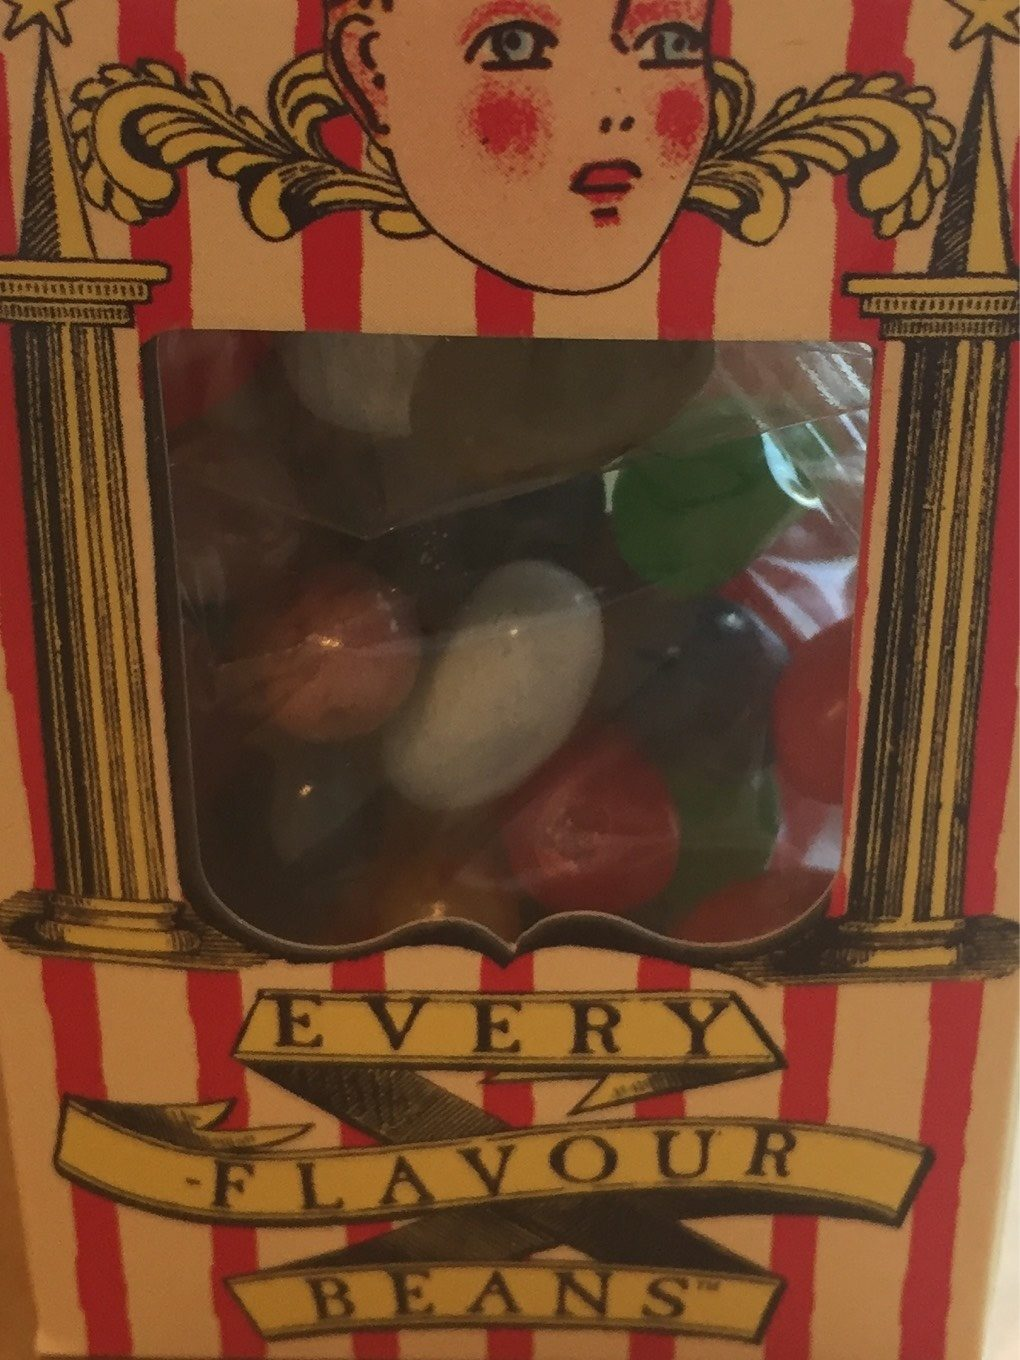 Every Flavour Beans - Product - fr